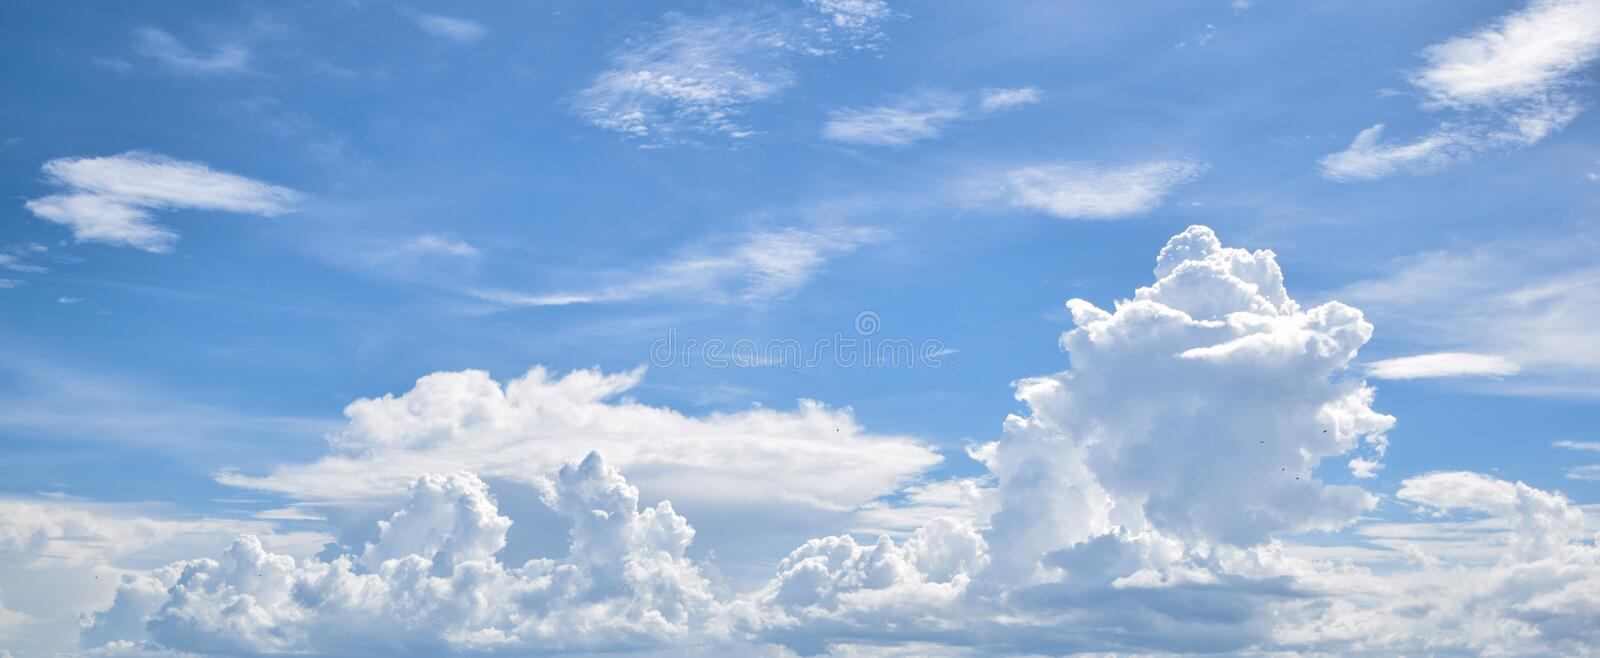 White cloud in the blue sky. Air, atmosphere, background, beautiful, beauty, bright, clear, climate, clouds, cloudscape, cloudy, color, cumulus, day stock images